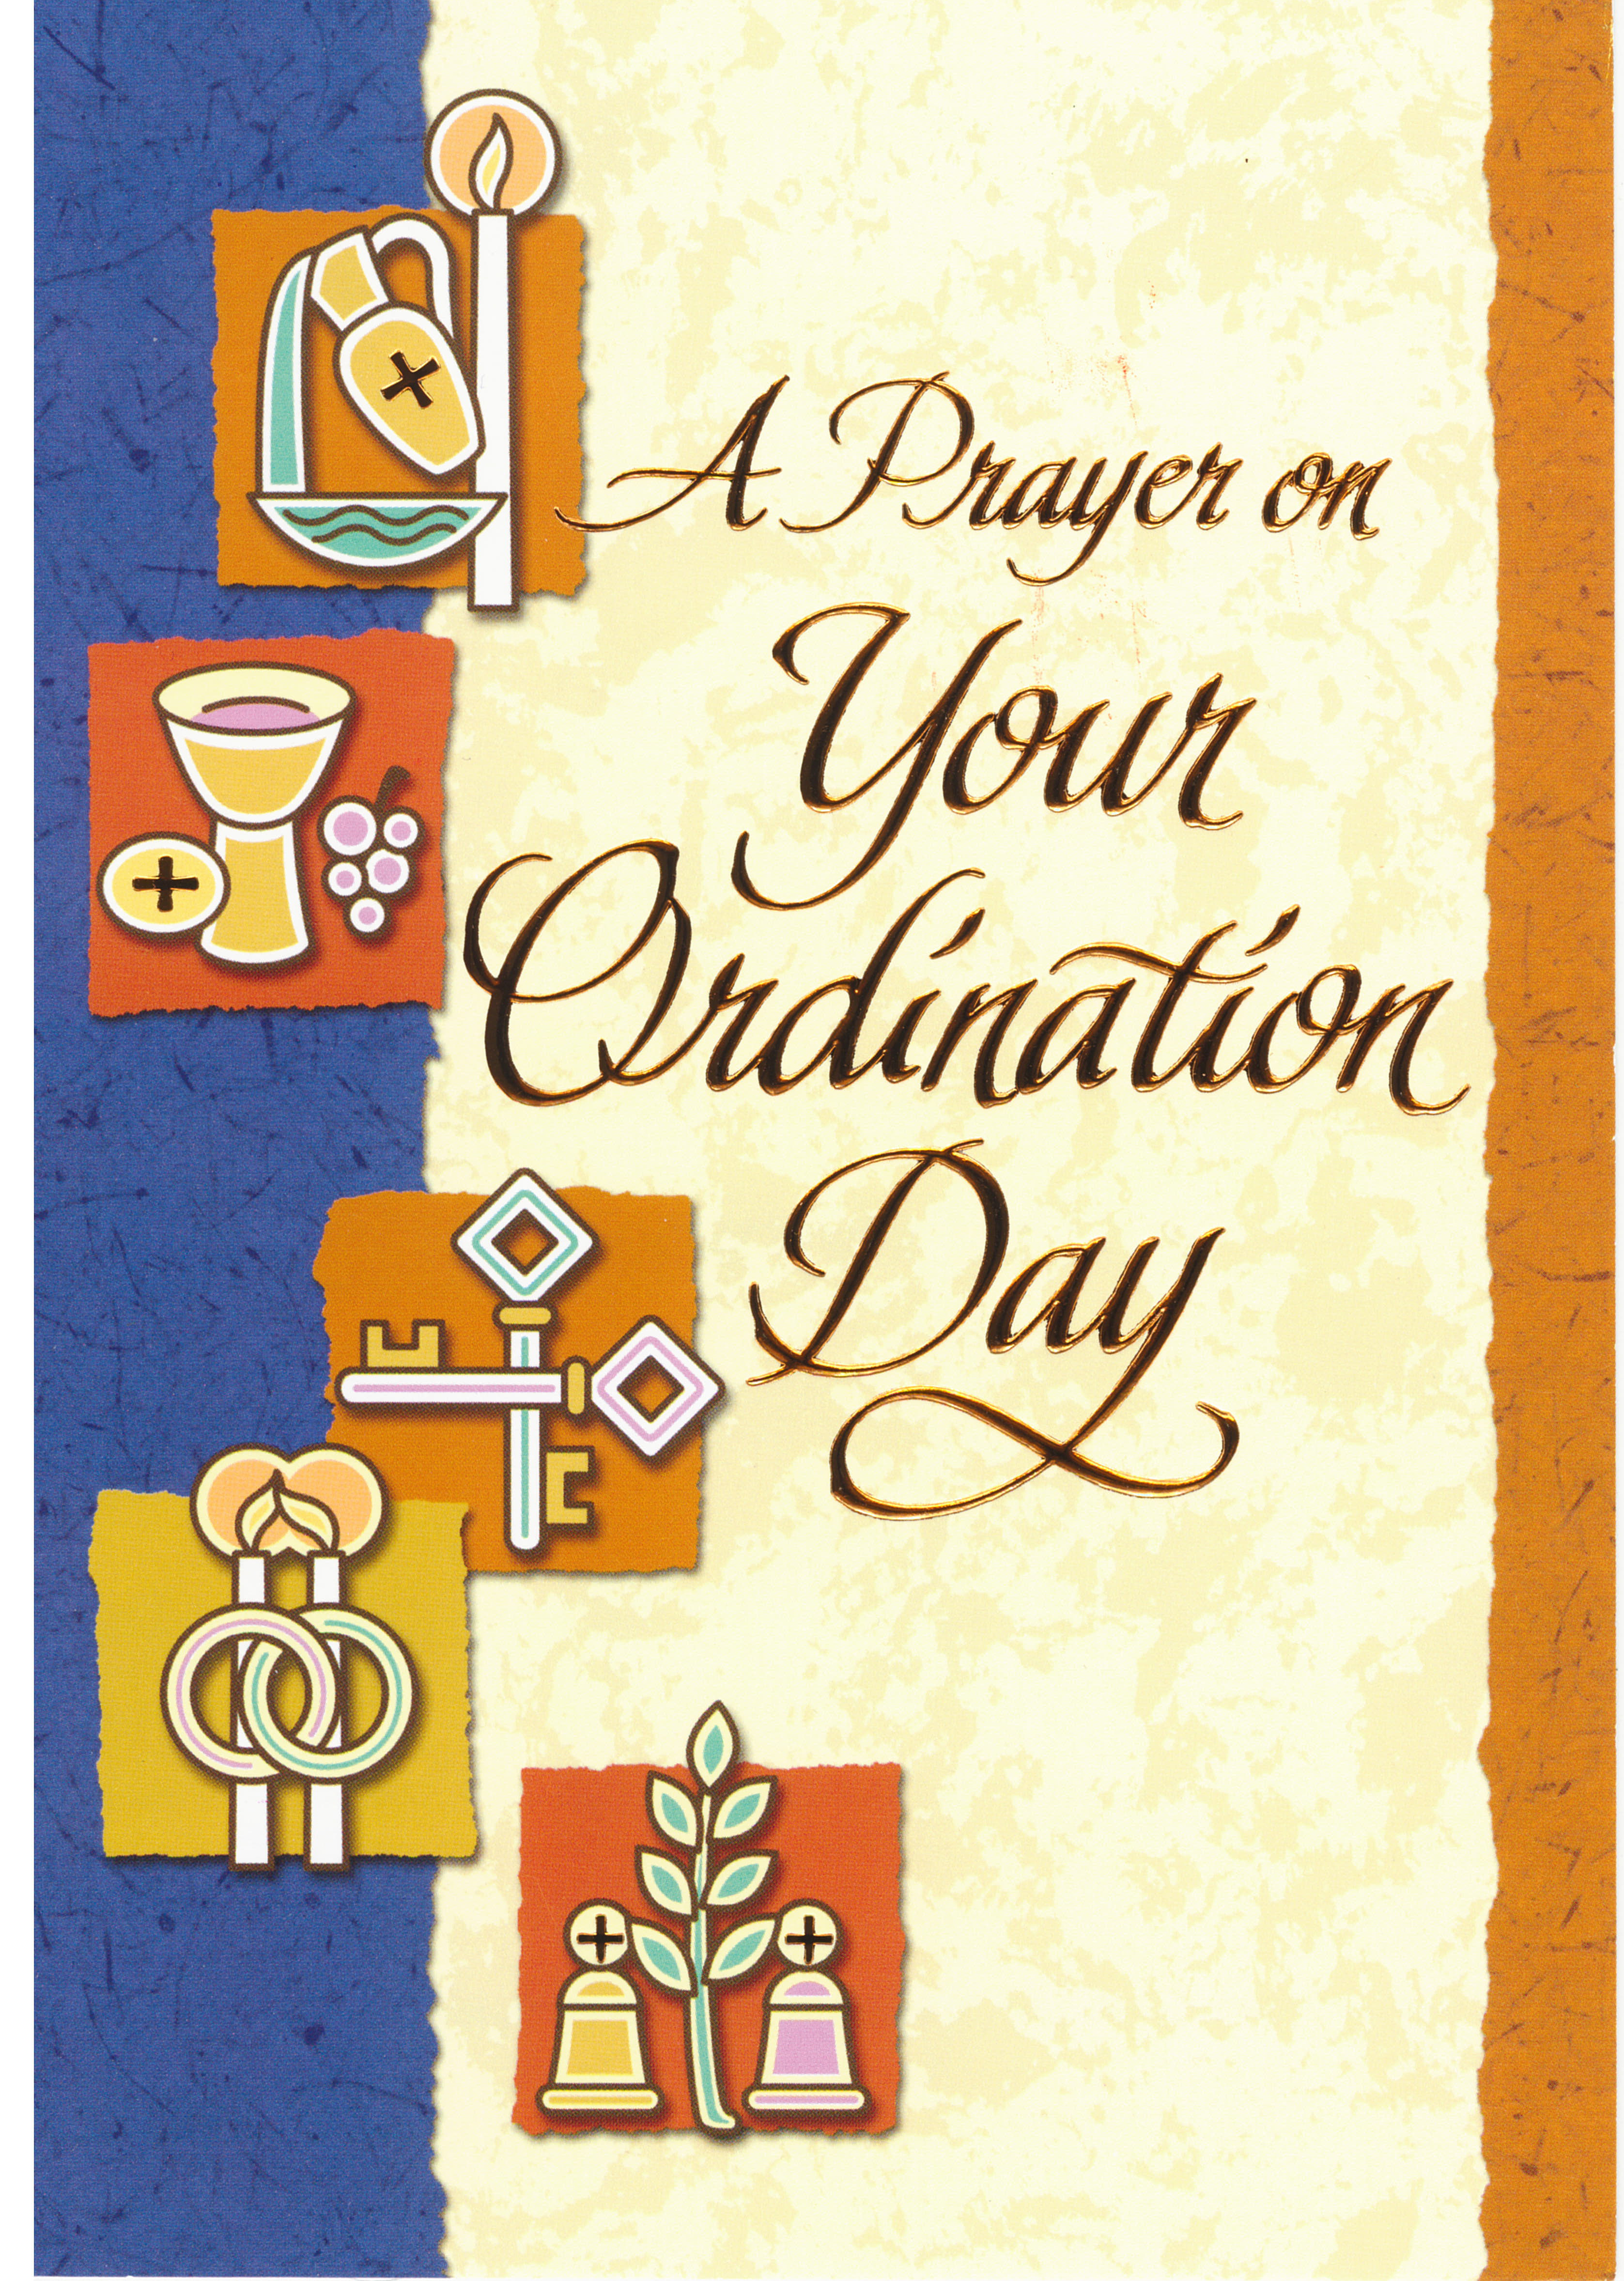 A Prayer On Your Ordination Day 277-CT7021